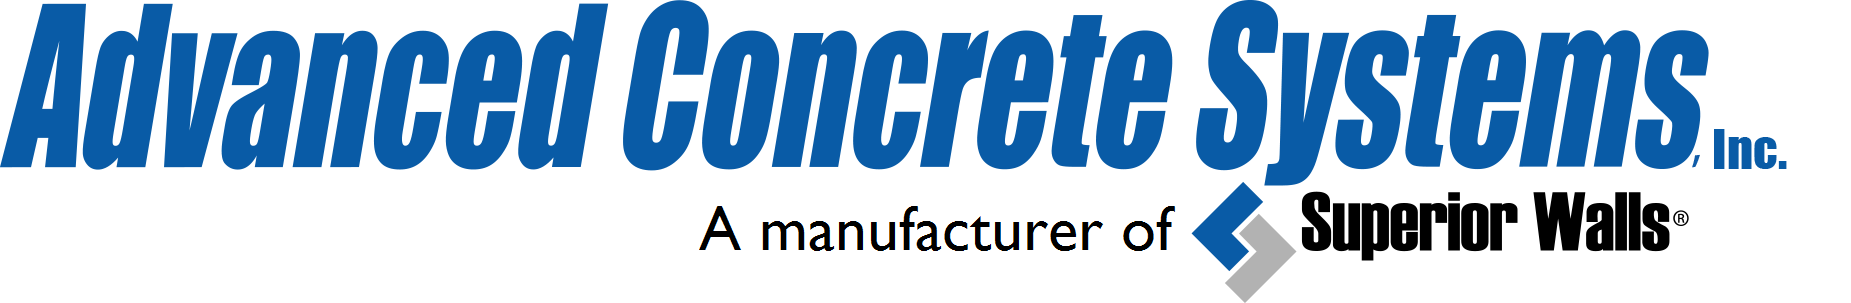 Advanced Concrete Systems